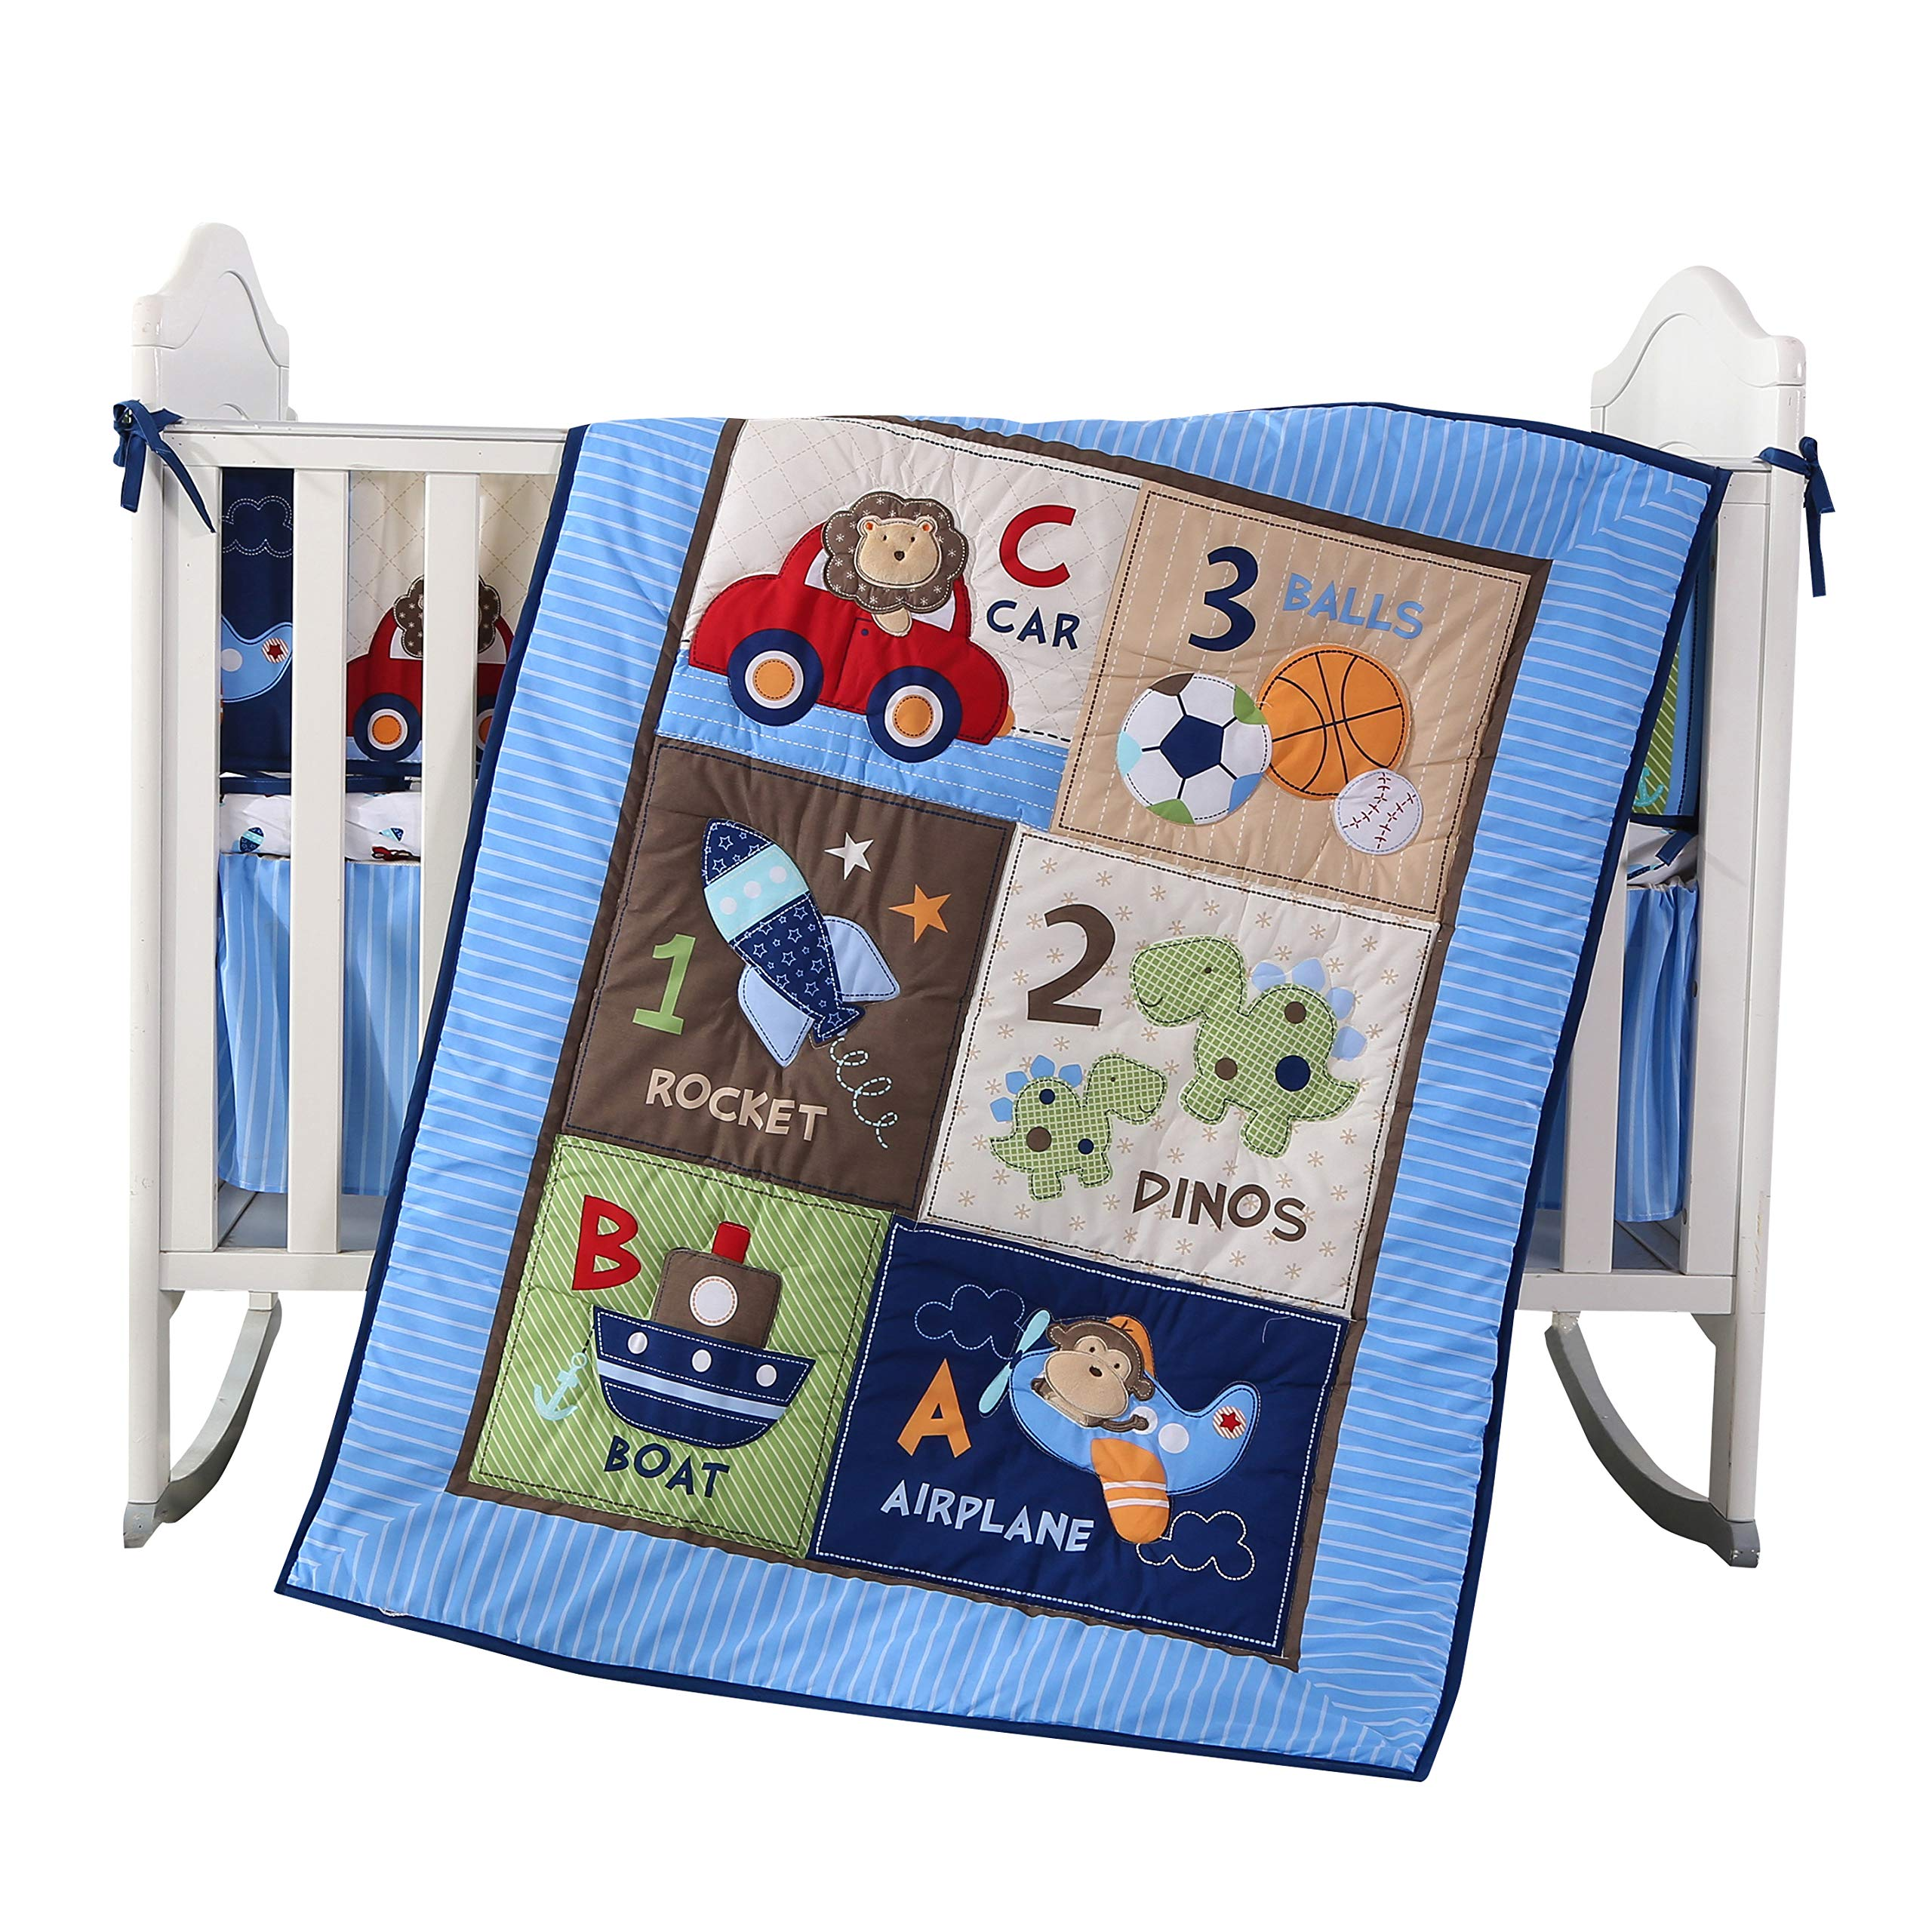 Wowelife Blue Crib Bedding Sets for Boys 7 Piece Travel Car and Airplane for Baby(Little Pilot) by Wowelife (Image #2)